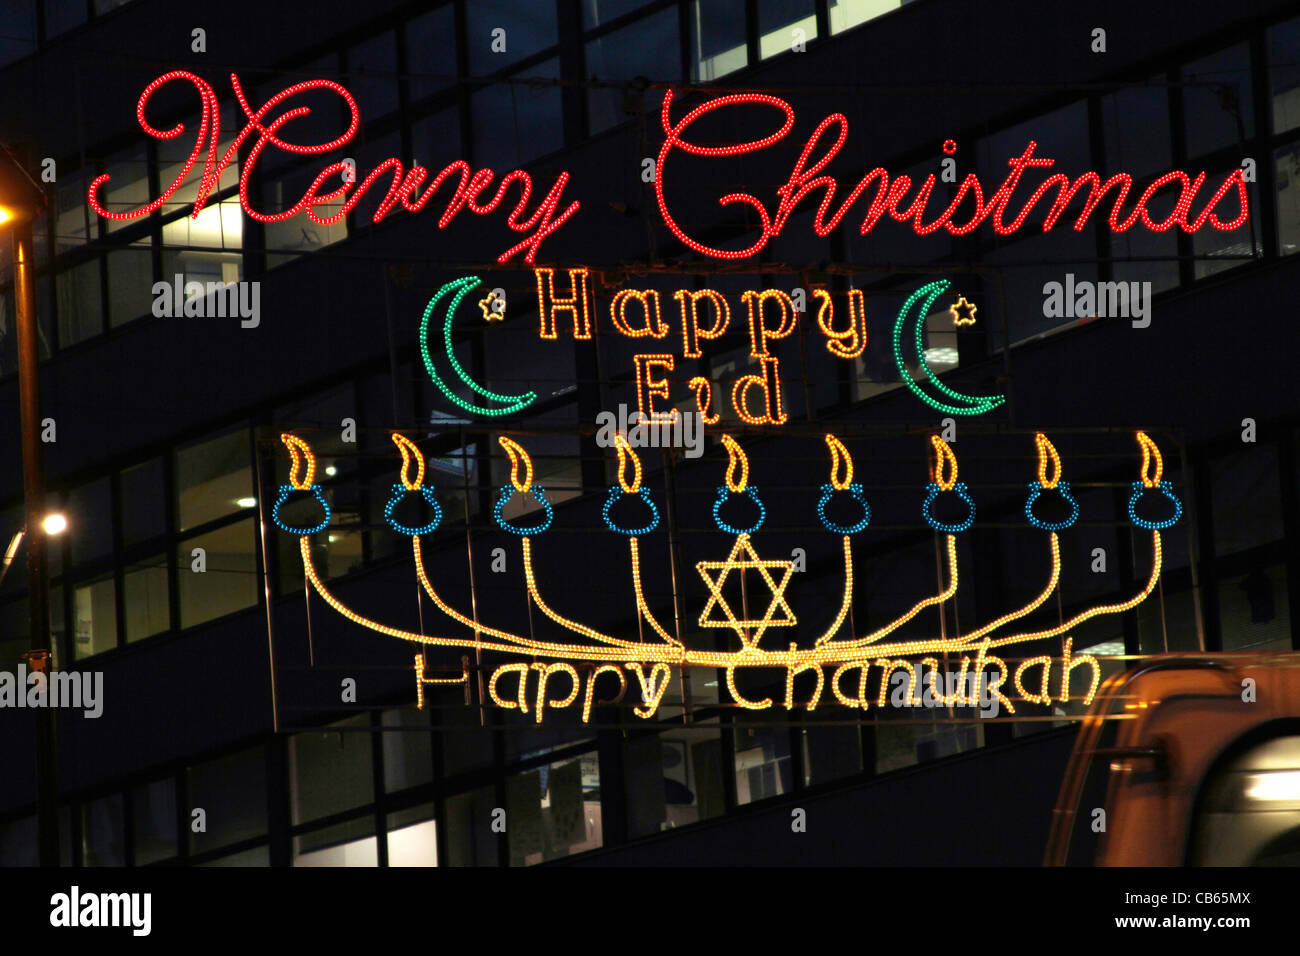 Christmas Lights, Merry Christmas, Happy Eid, Happy Chanukah Stock ...